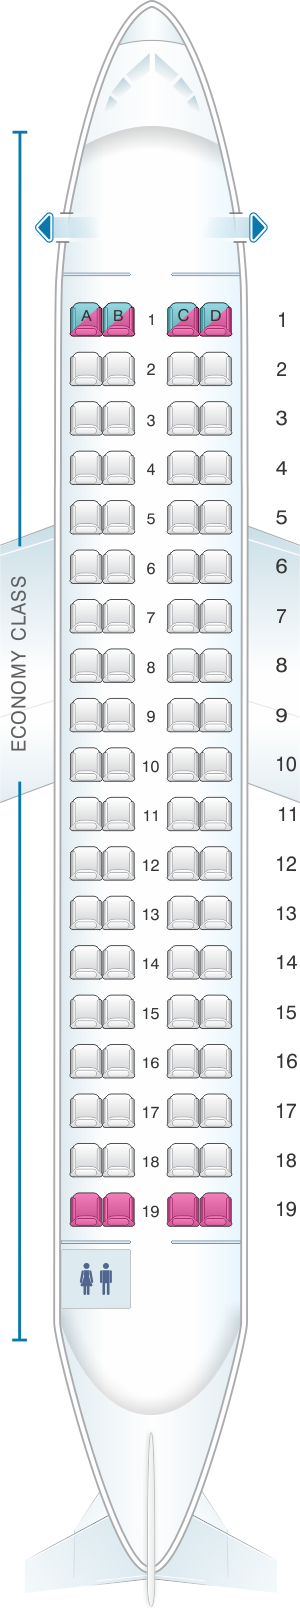 Seat map for Aer Lingus ATR 72 600